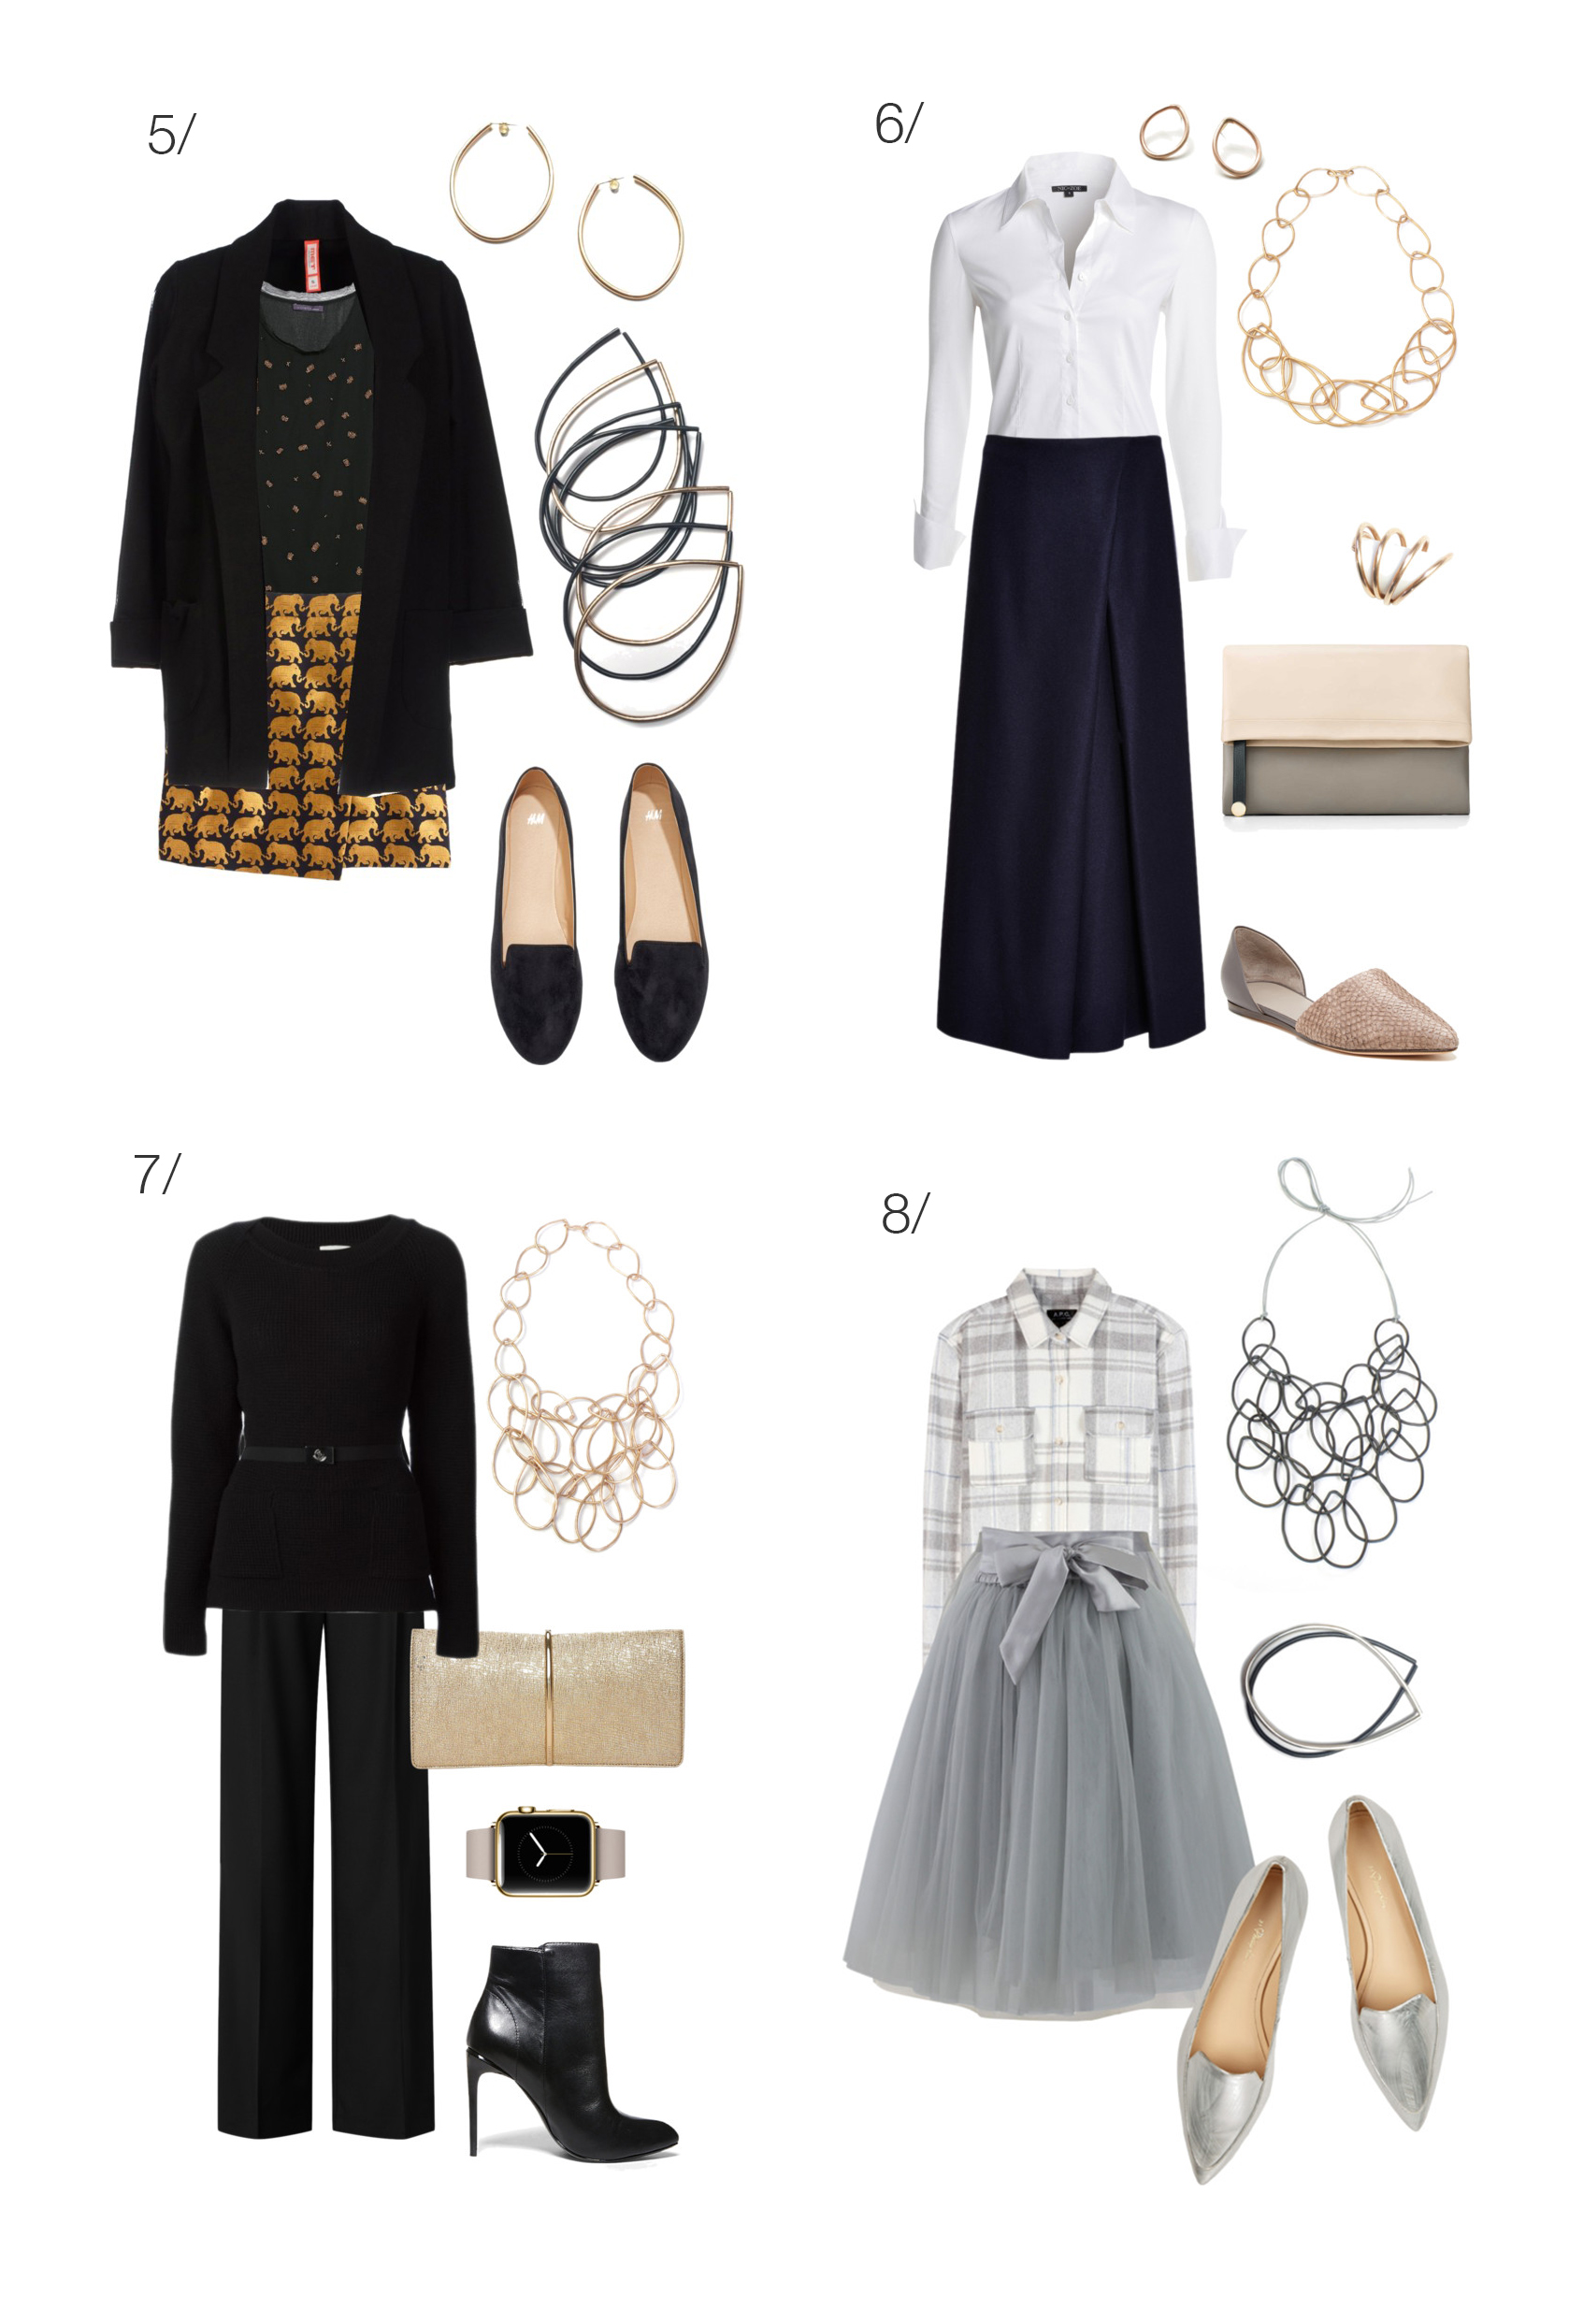 8 outfits that are perfect for any holiday party